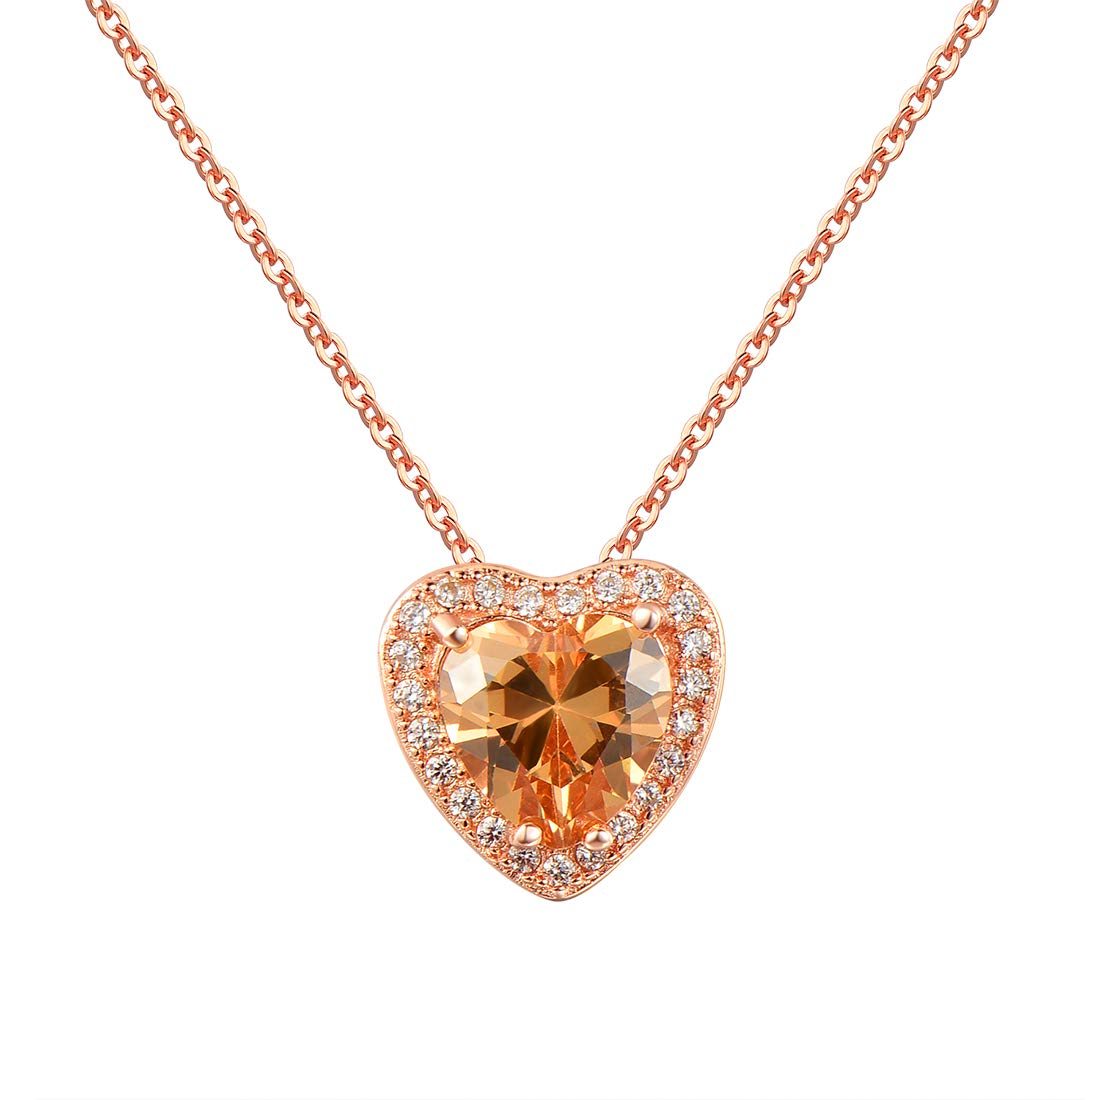 Mouttop Cubic Zirconia Pendant Necklace,Heart Pendant with Roes Gold Plated Necklace for Women by Mouttop